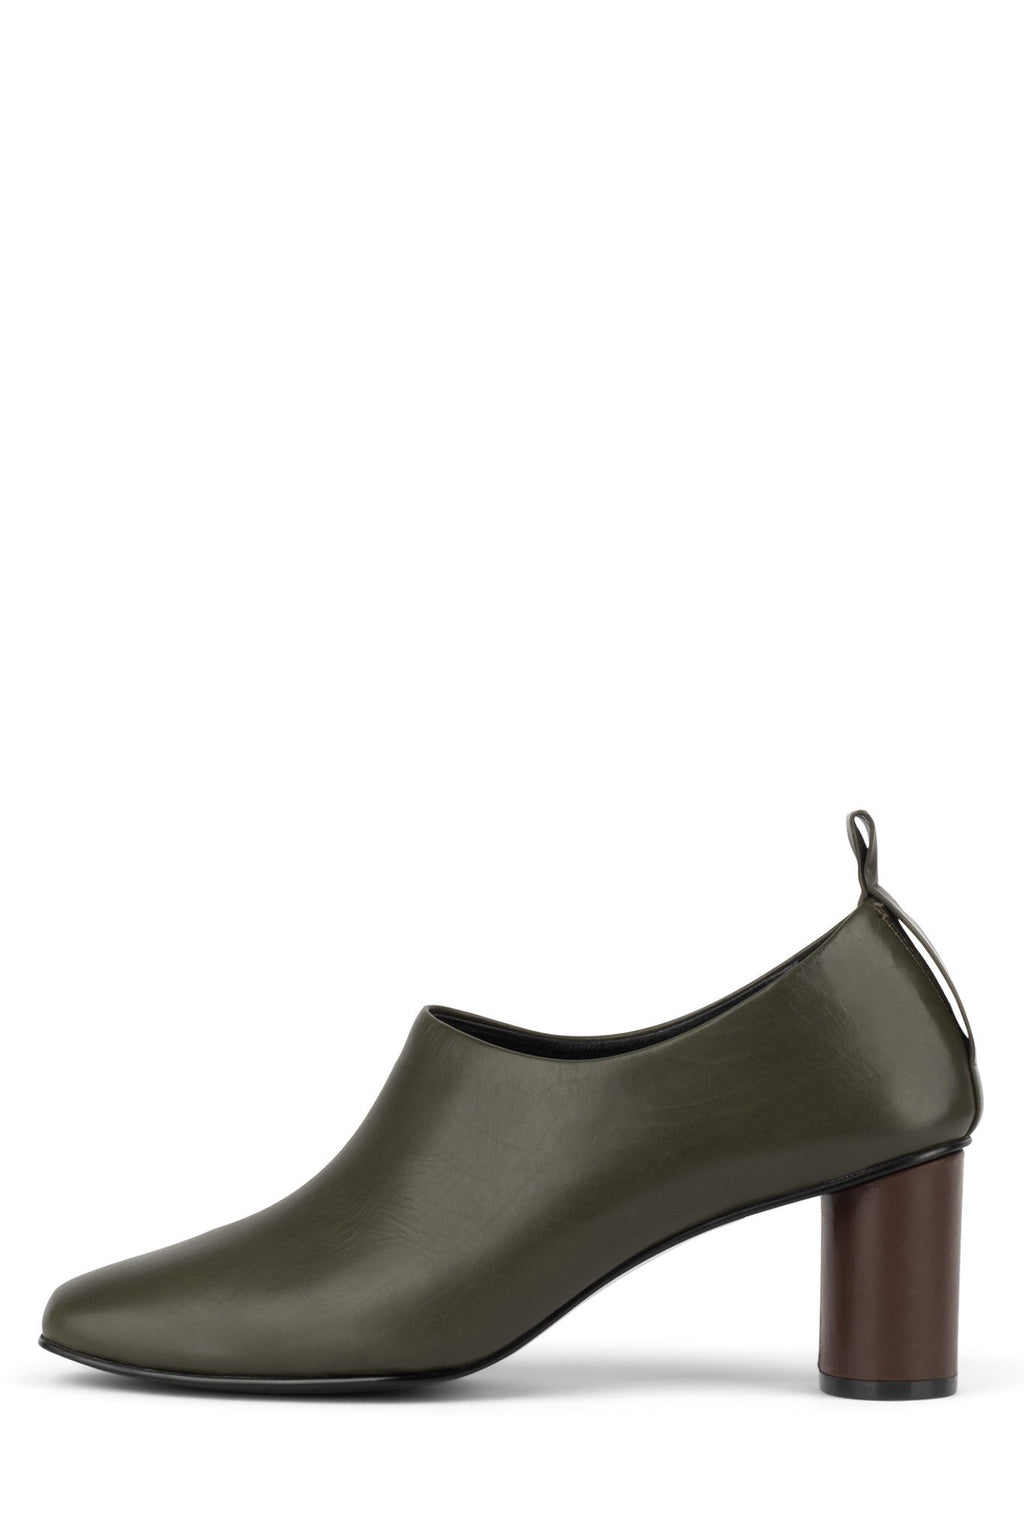 BASIC Pump Jeffrey Campbell Olive 6